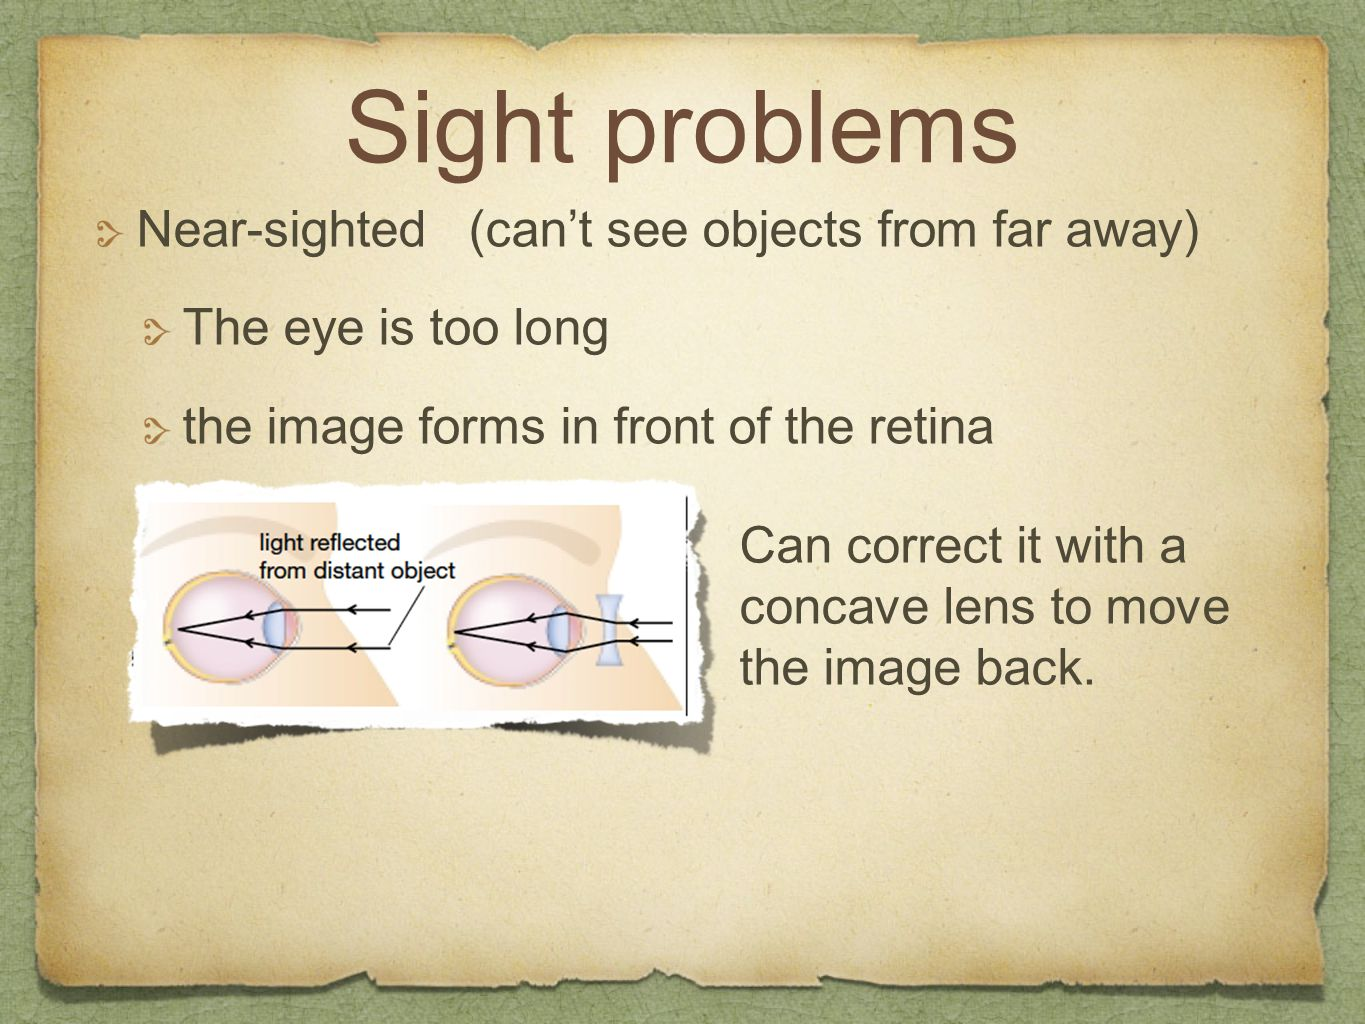 Sight problems Near-sighted (can't see objects from far away) The eye is too long the image forms in front of the retina Can correct it with a concave